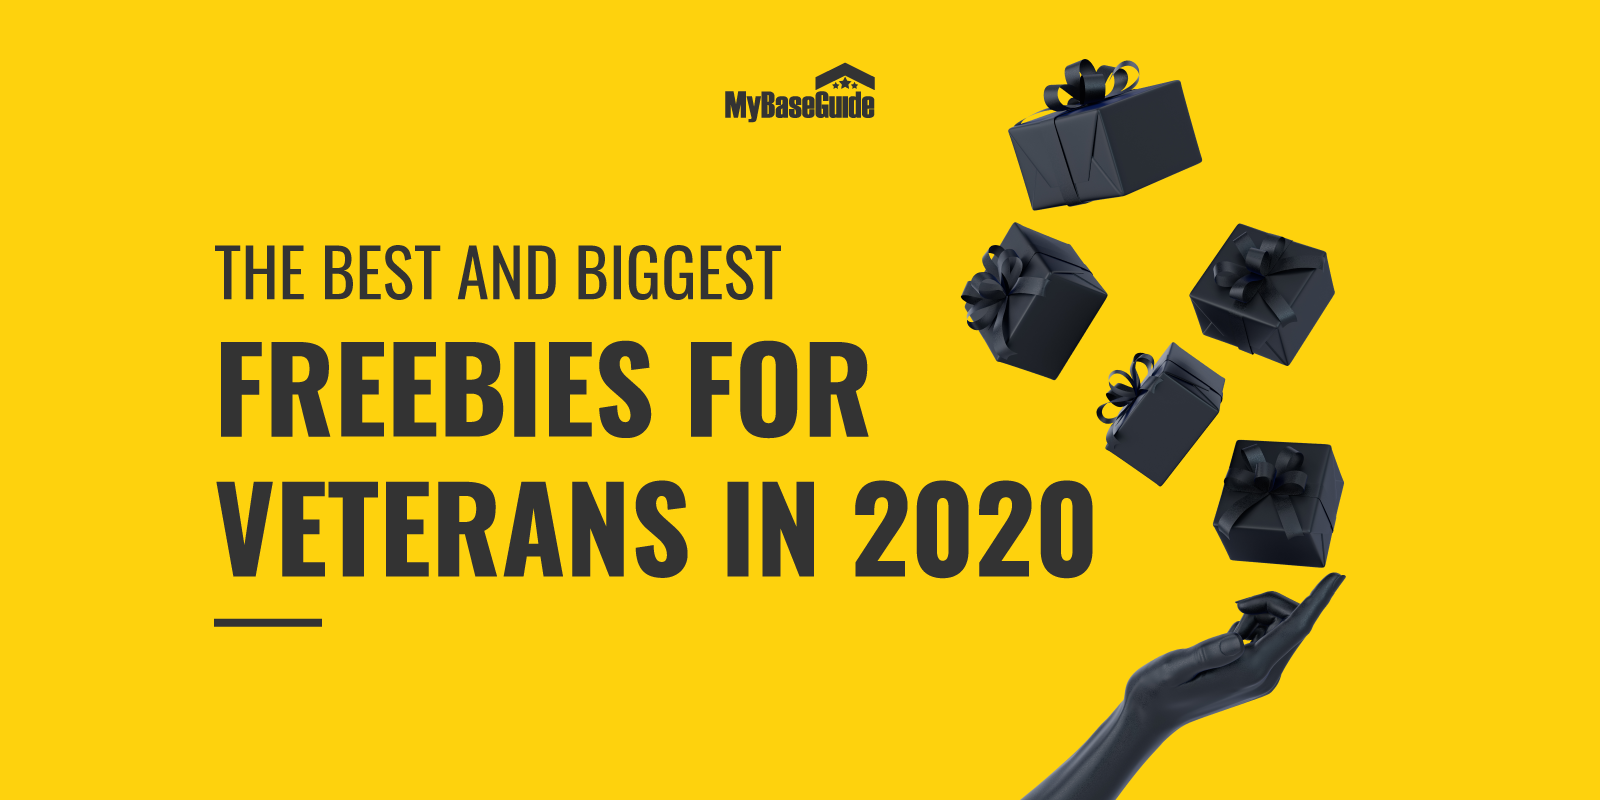 Hero image: The Best and Biggest Freebies for Veterans in 2020 (Free Stuff for Veterans)